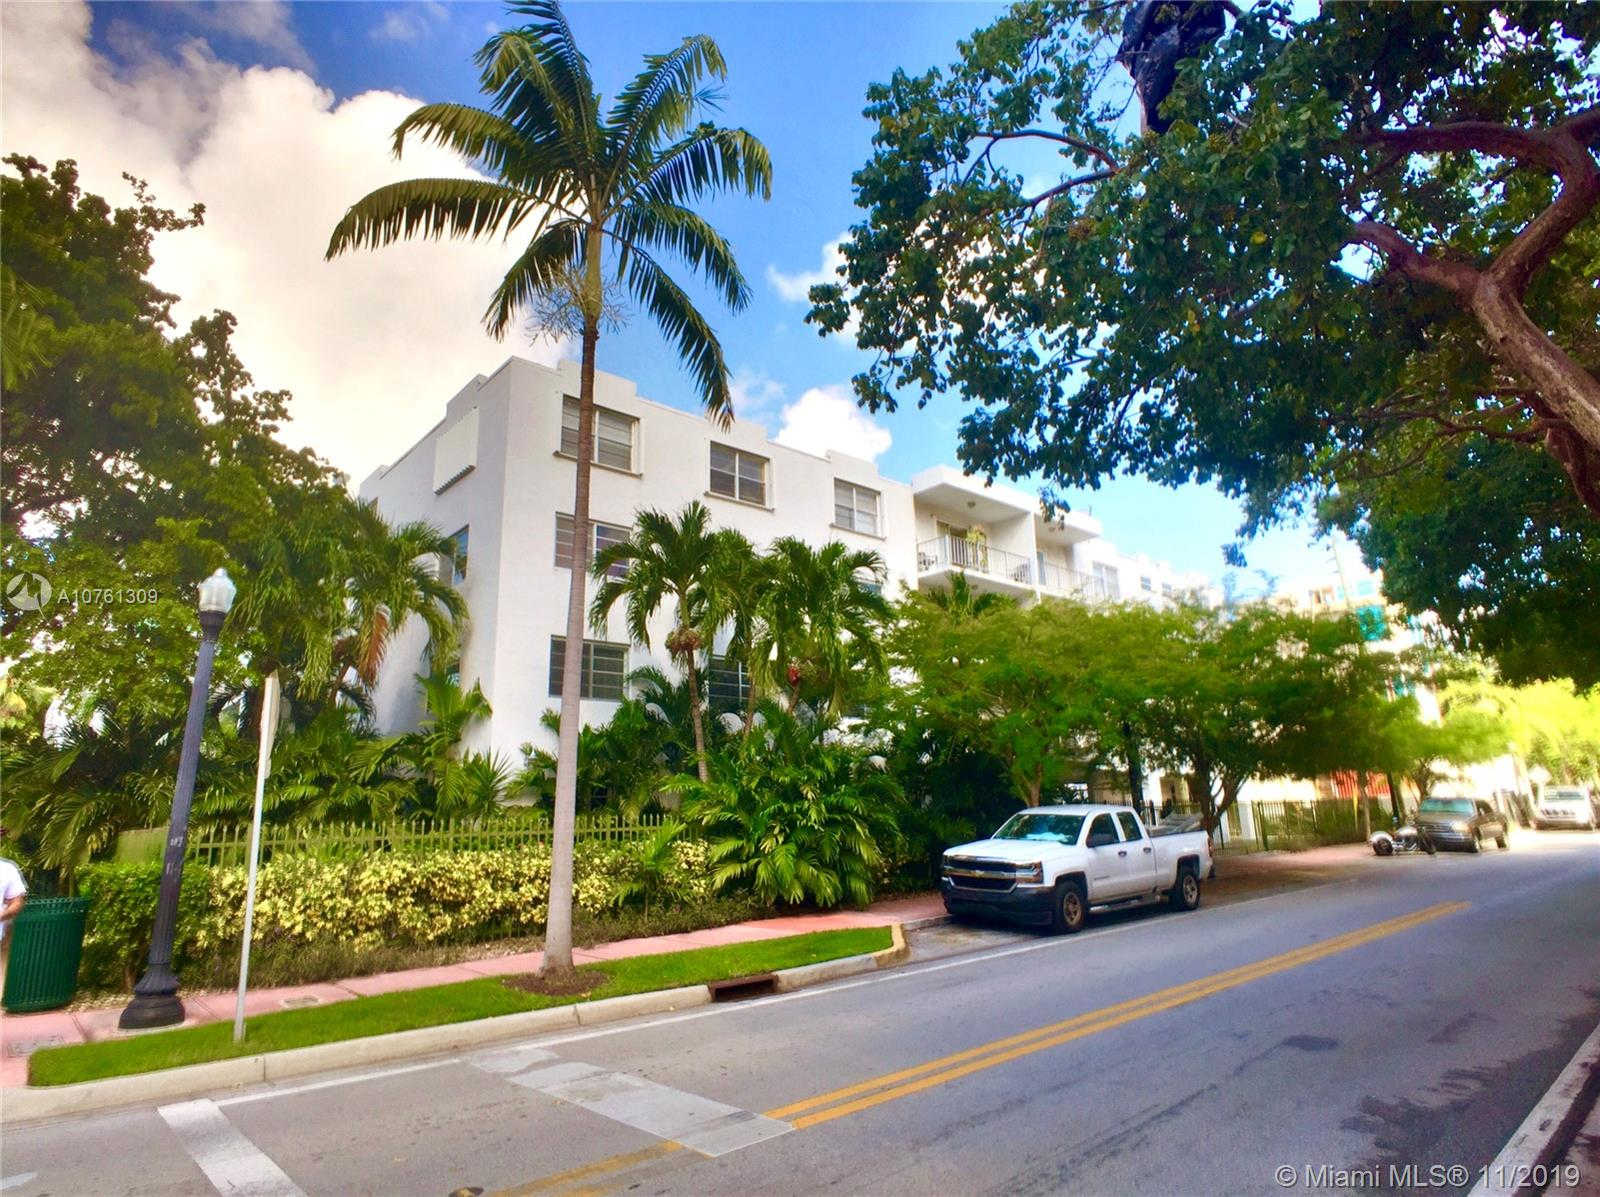 201 Jefferson Ave #3D, Miami Beach, FL 33139 now has a new price of $2,400!